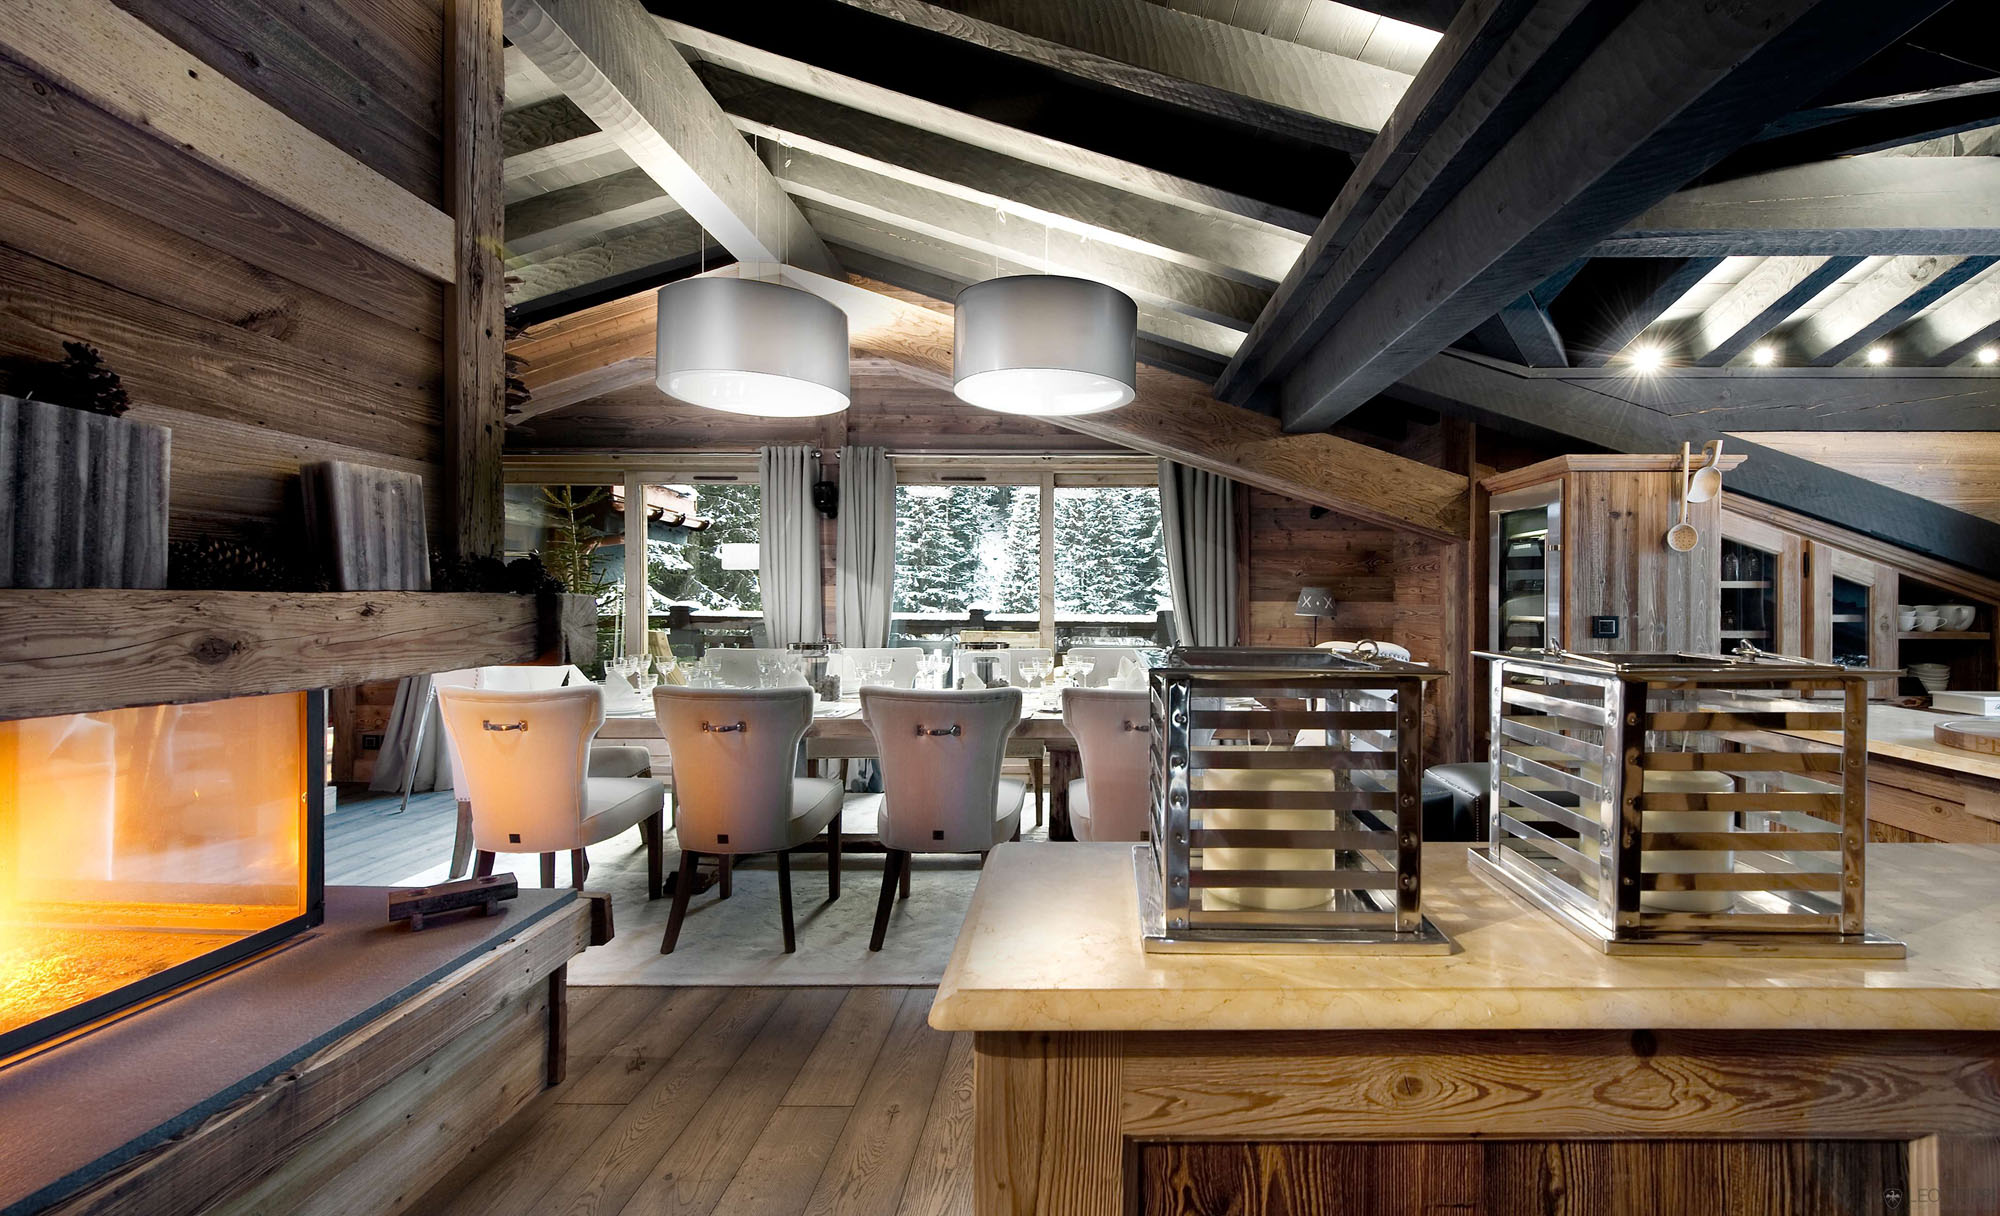 The Petit Chateau 1850 – Courchevel – France (2)